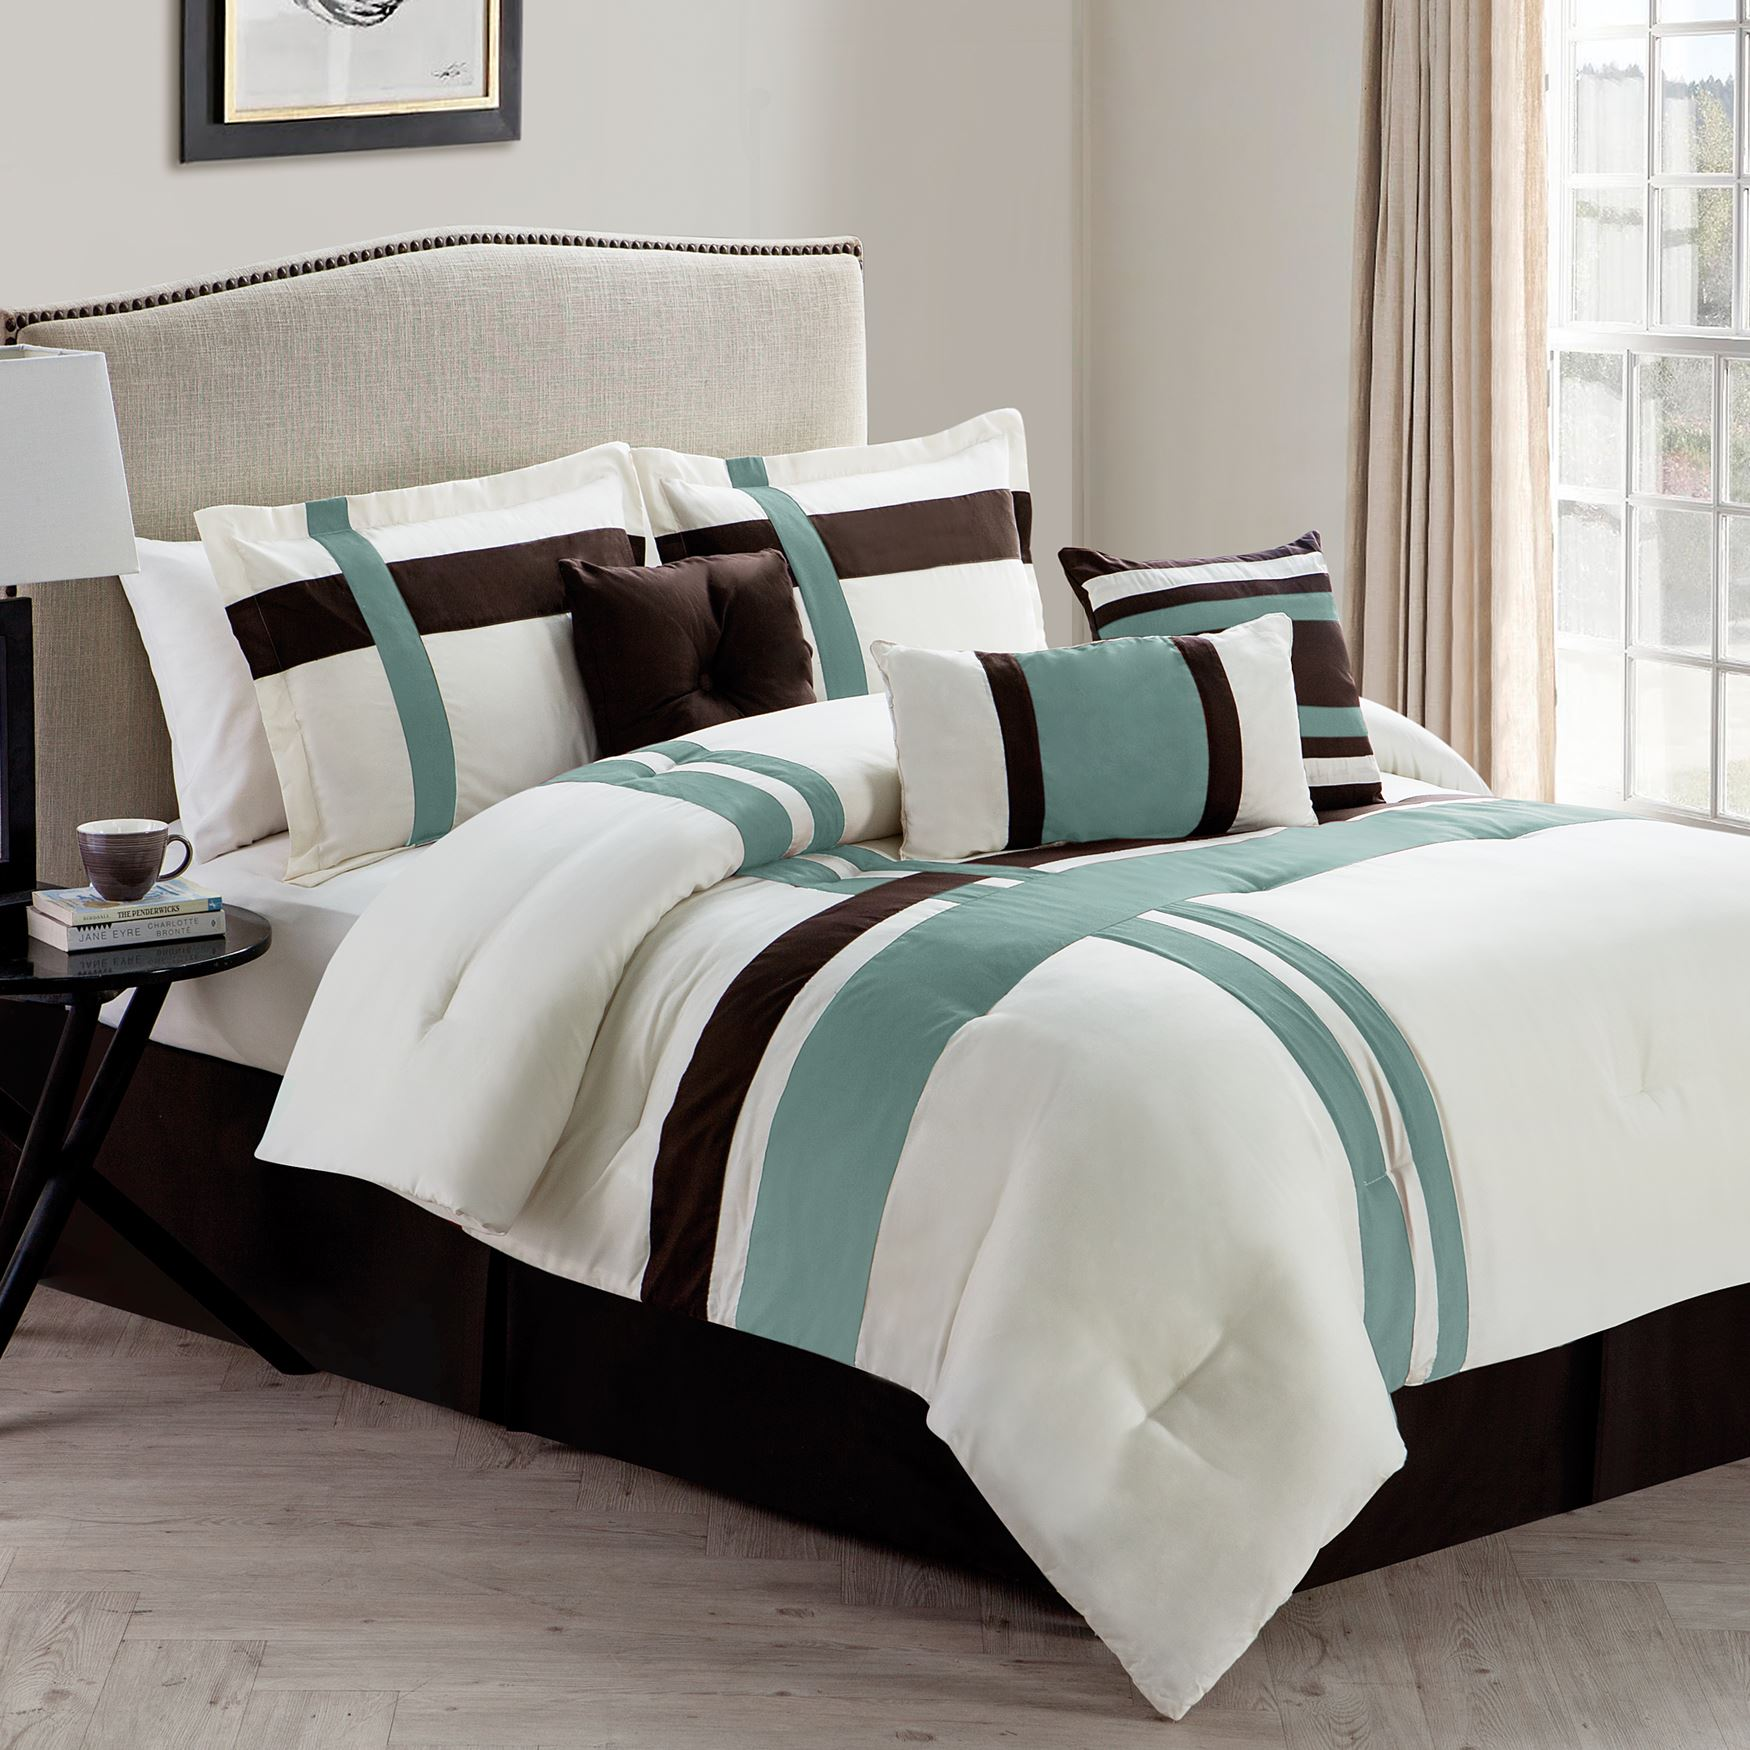 Berkley 7pc Comforter Set,